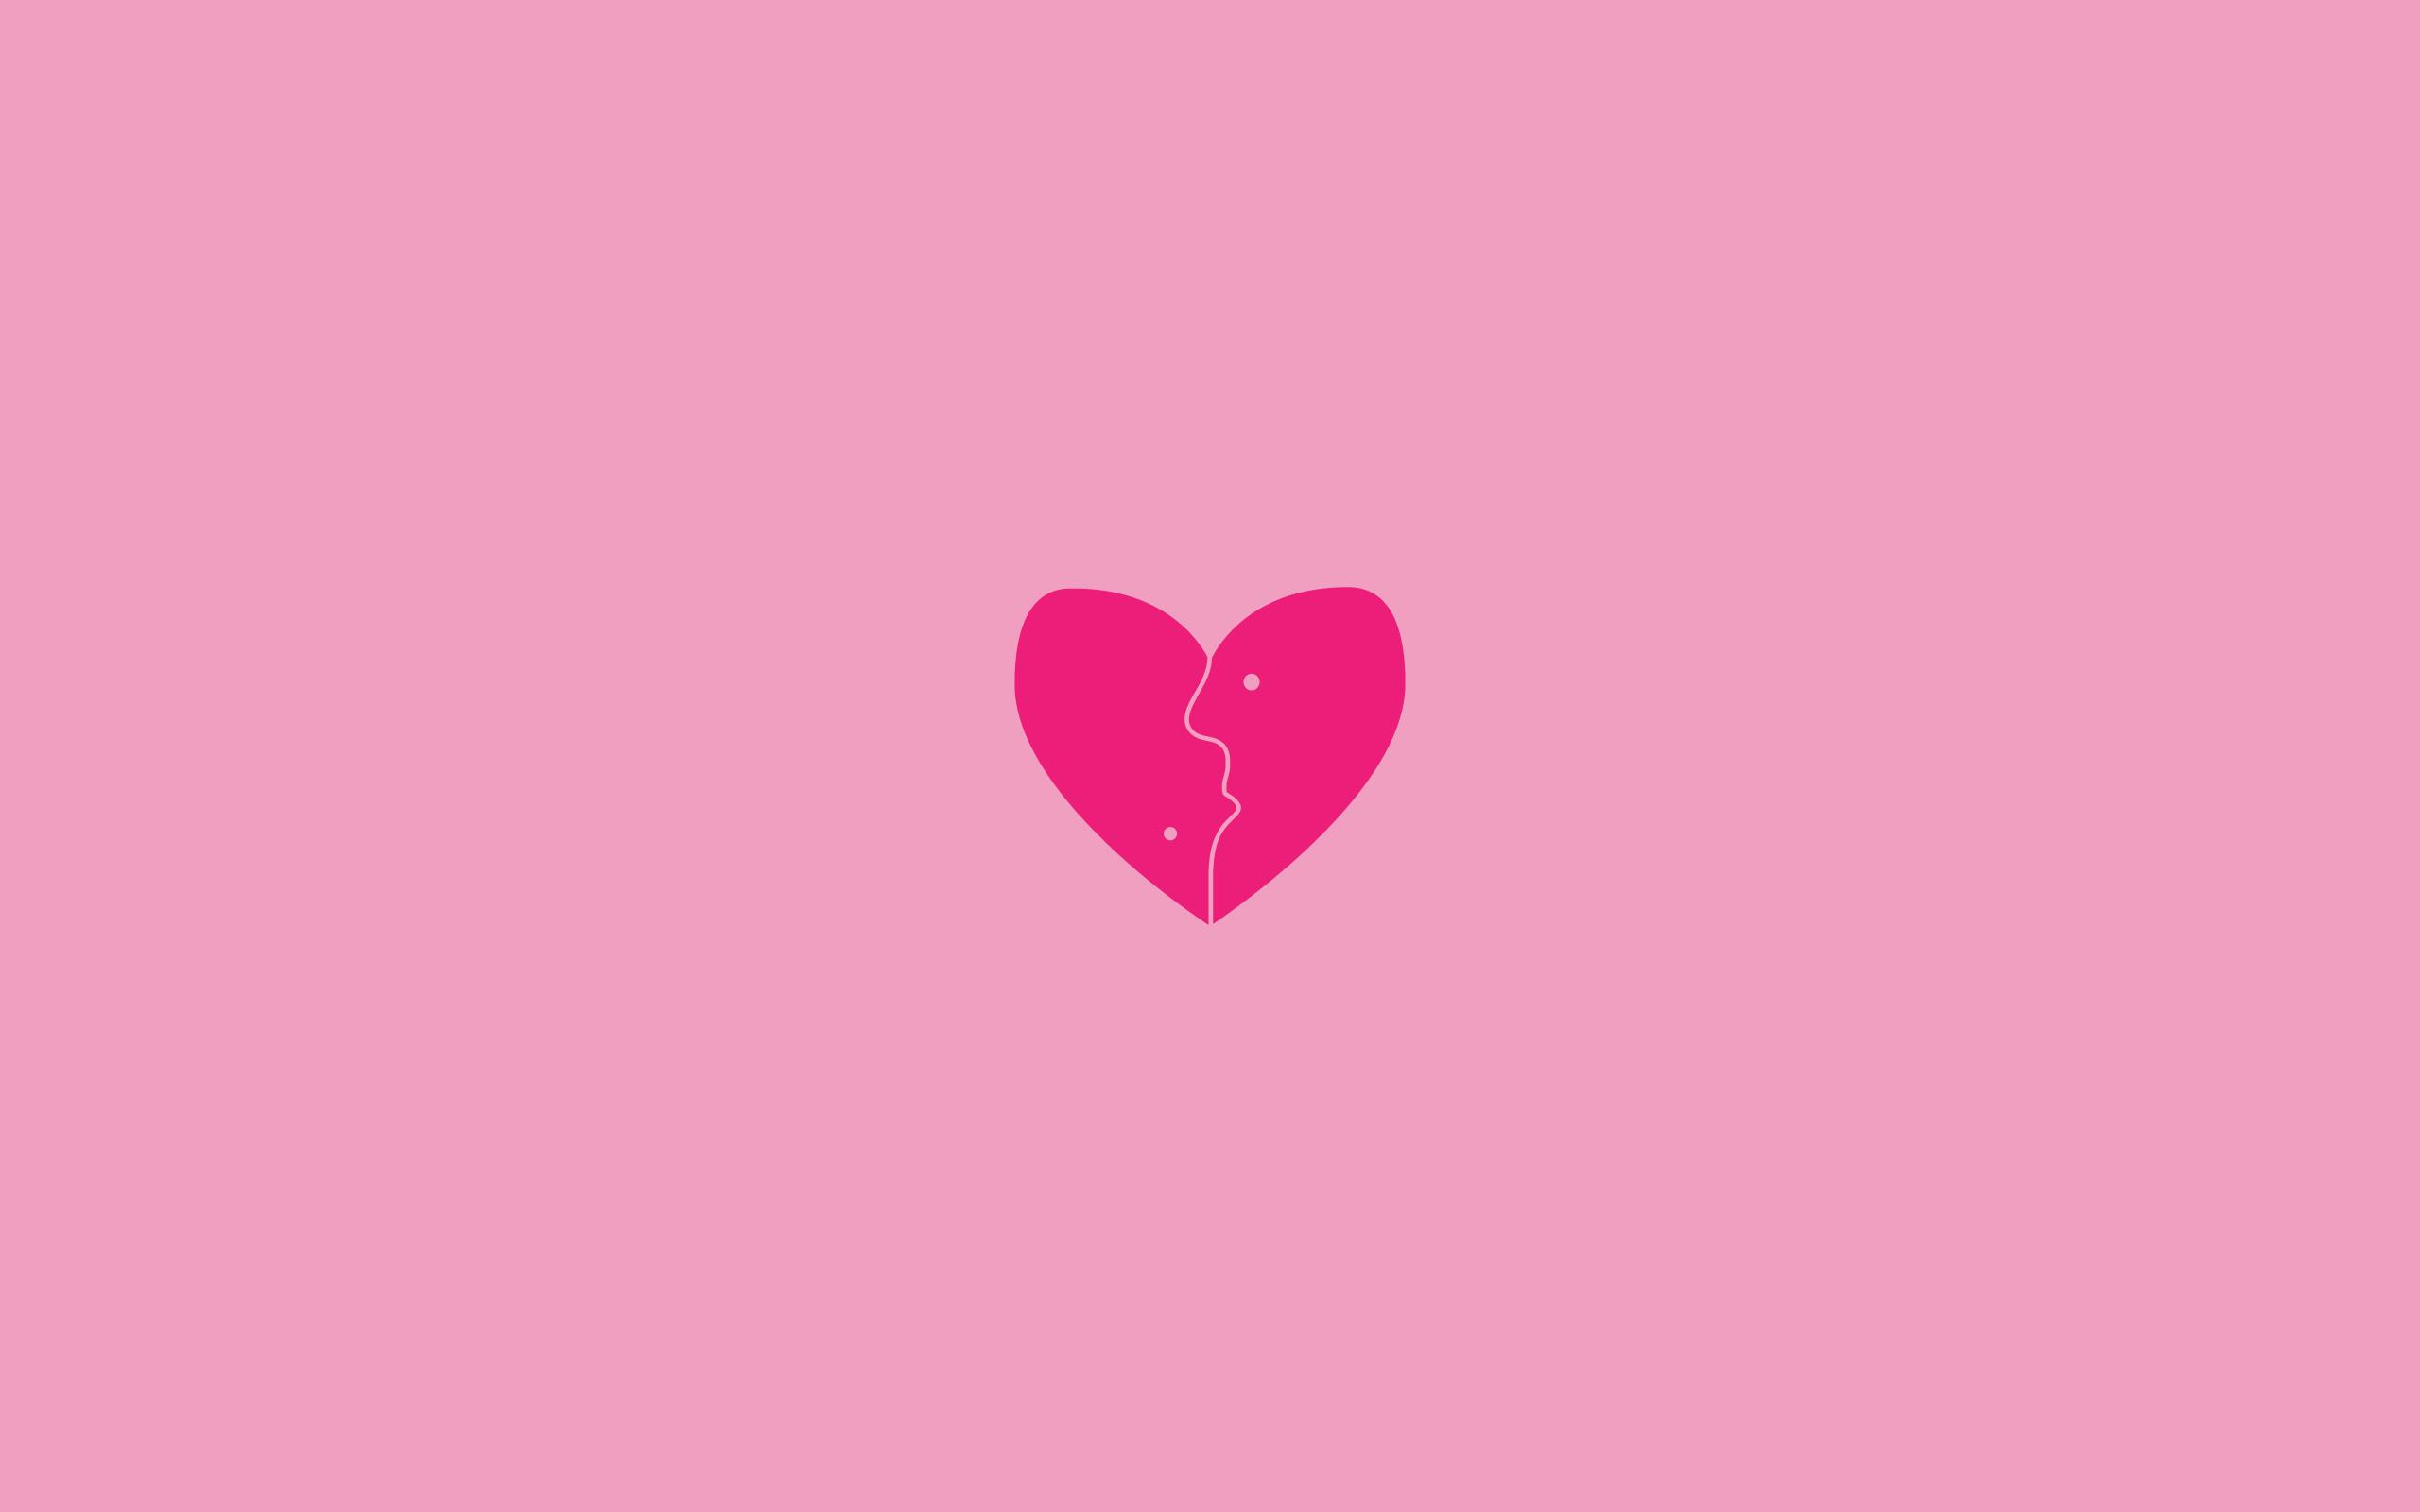 Little Heart With Pink Background | 2560 x 1600 | Download | Close